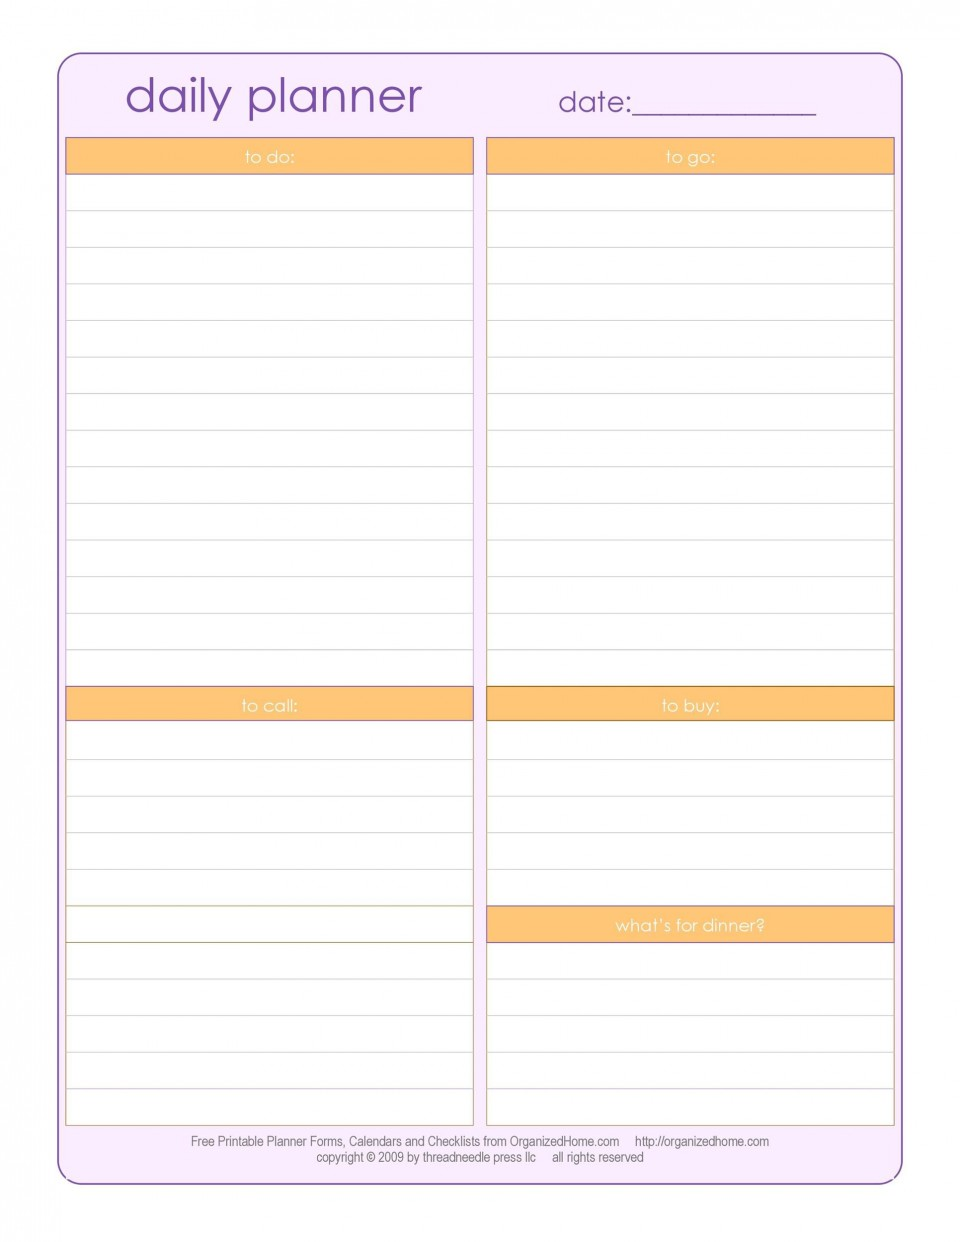 003 Best Printable Daily Schedule Template Inspiration 960